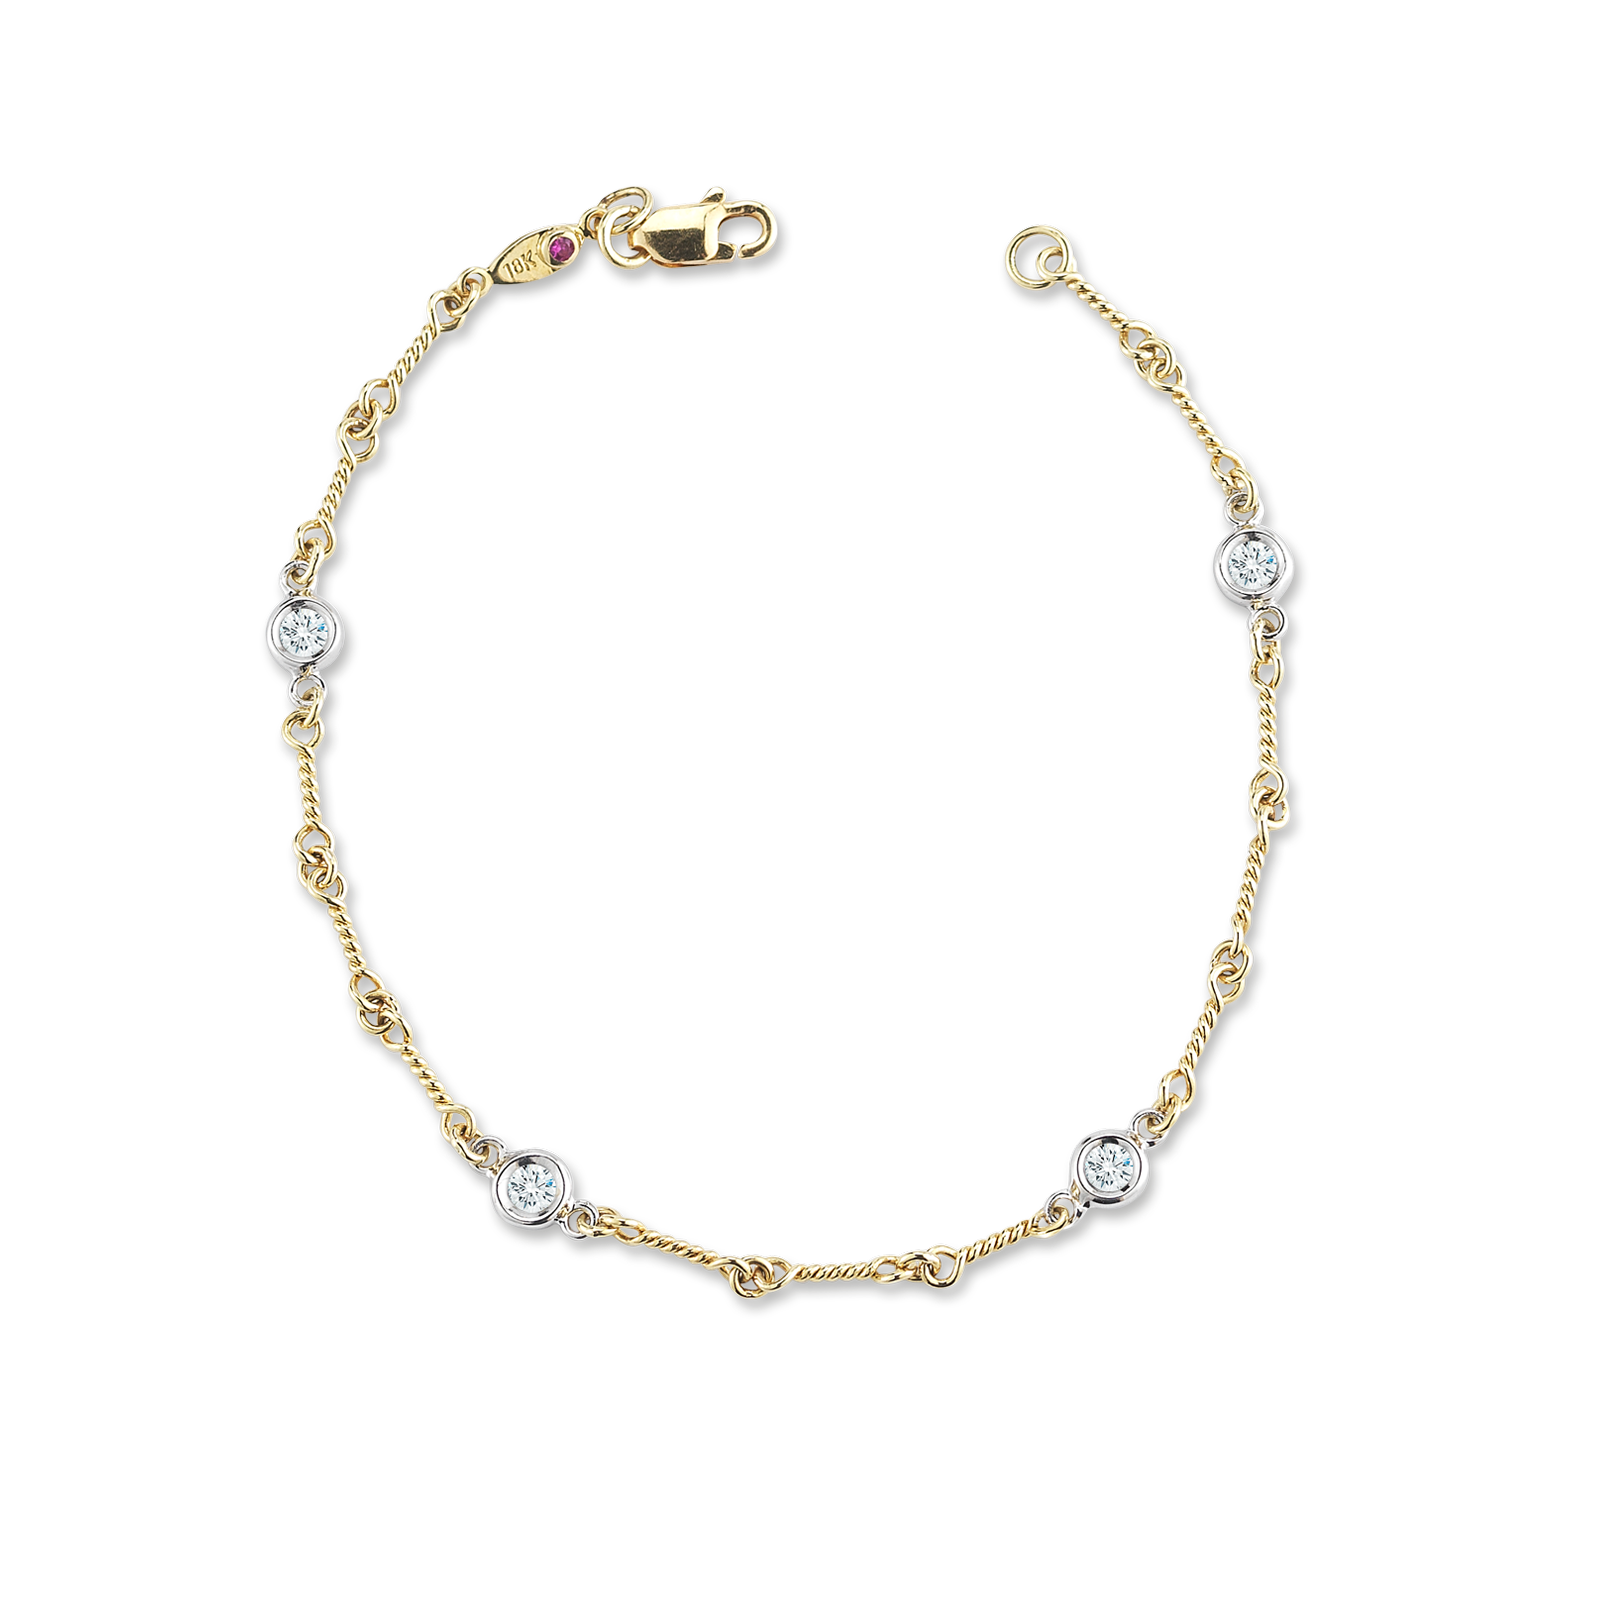 White Gold Chain Bracelet: Dogbone Chain Bracelet With Diamond Stations In Italian Gold